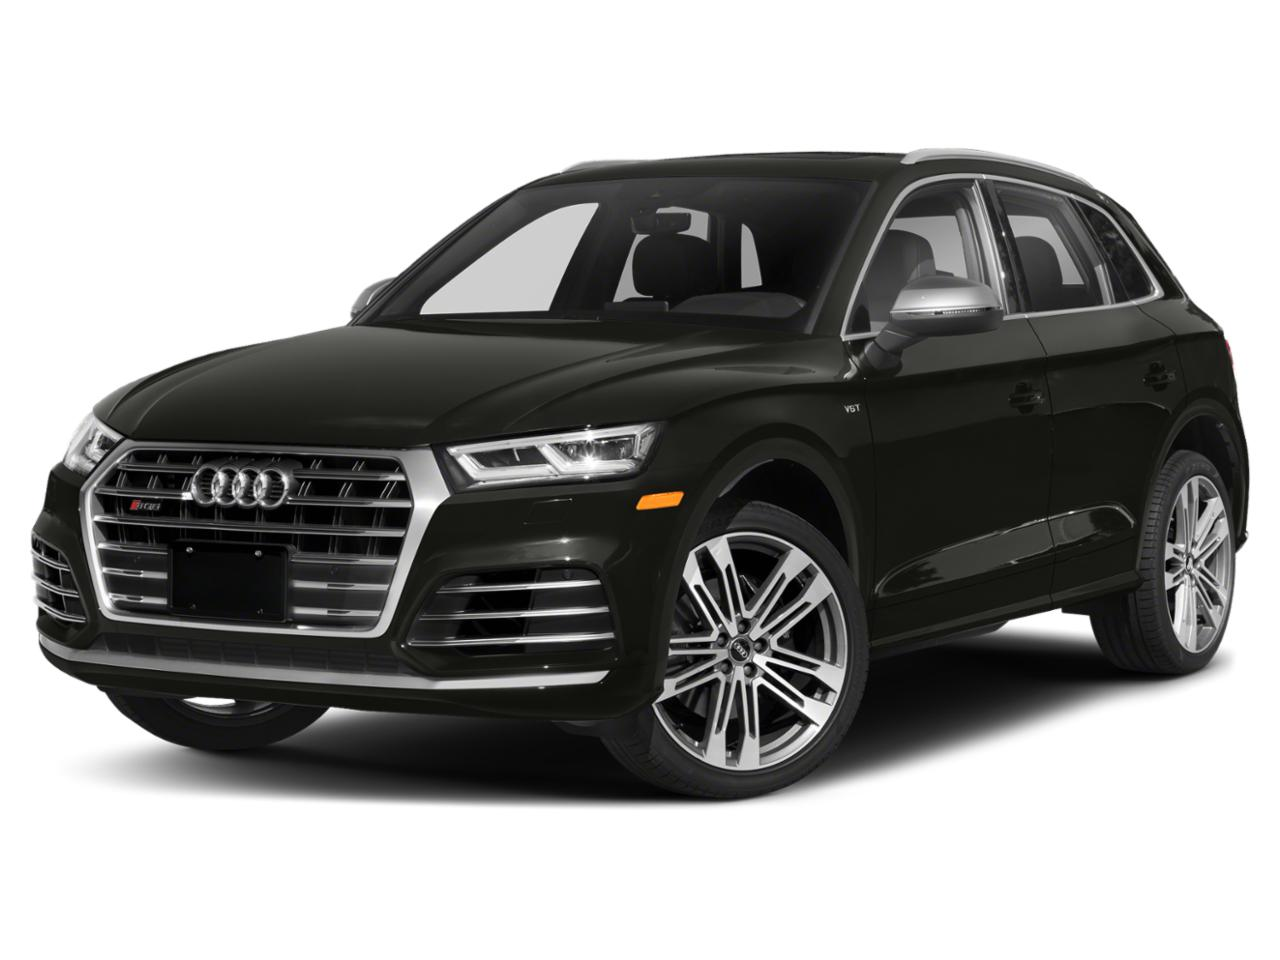 2018 Audi SQ5 Vehicle Photo in Allentown, PA 18103